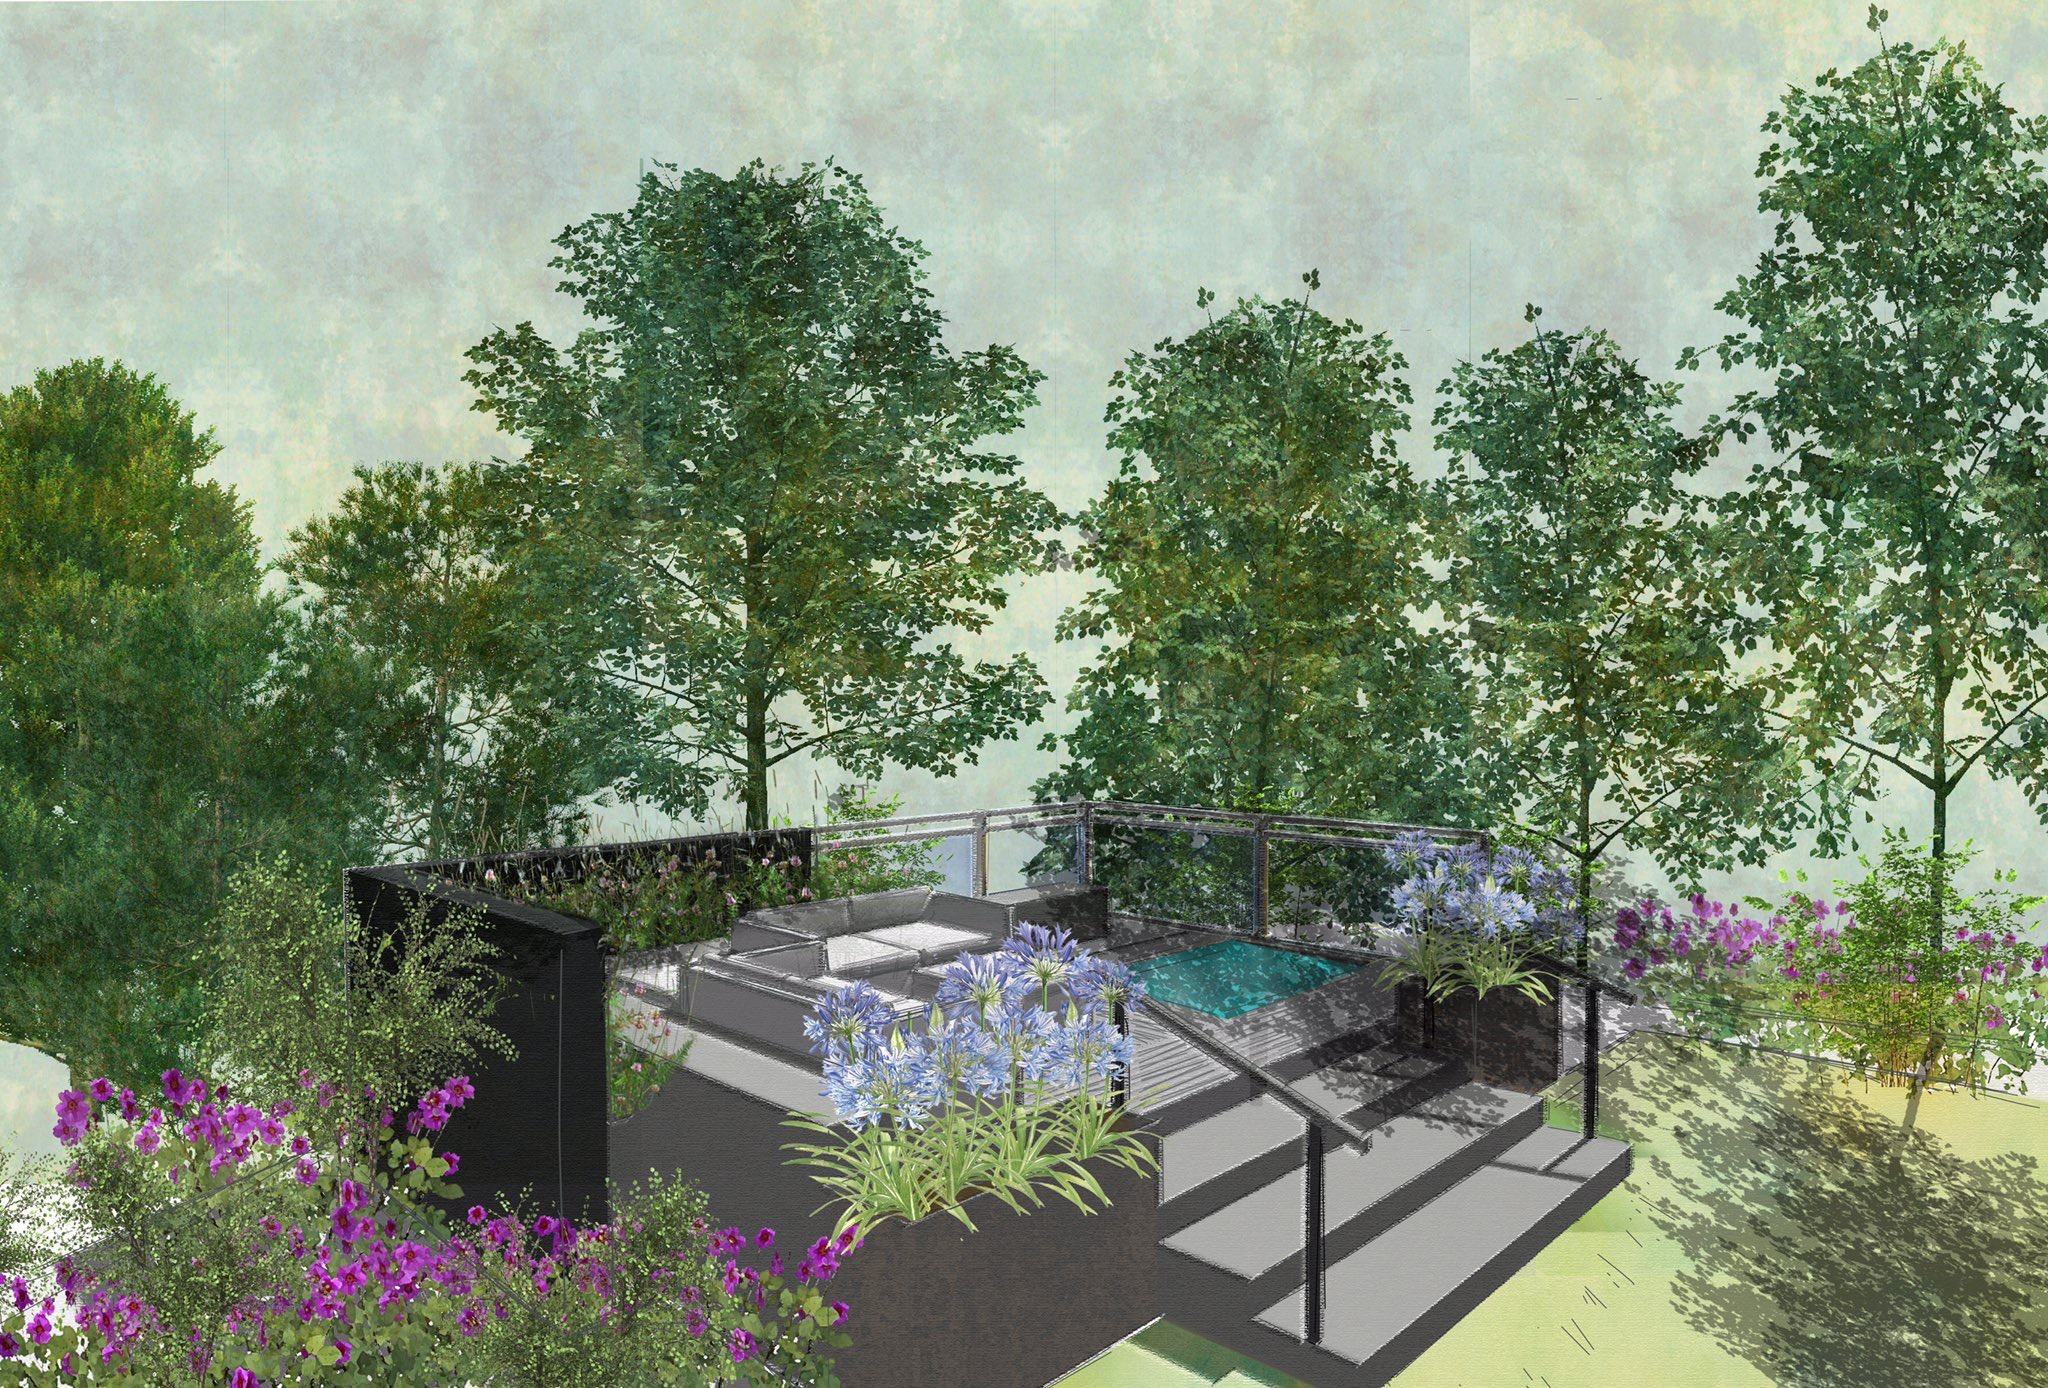 London college of garden design graduates win top garden for Garden design awards